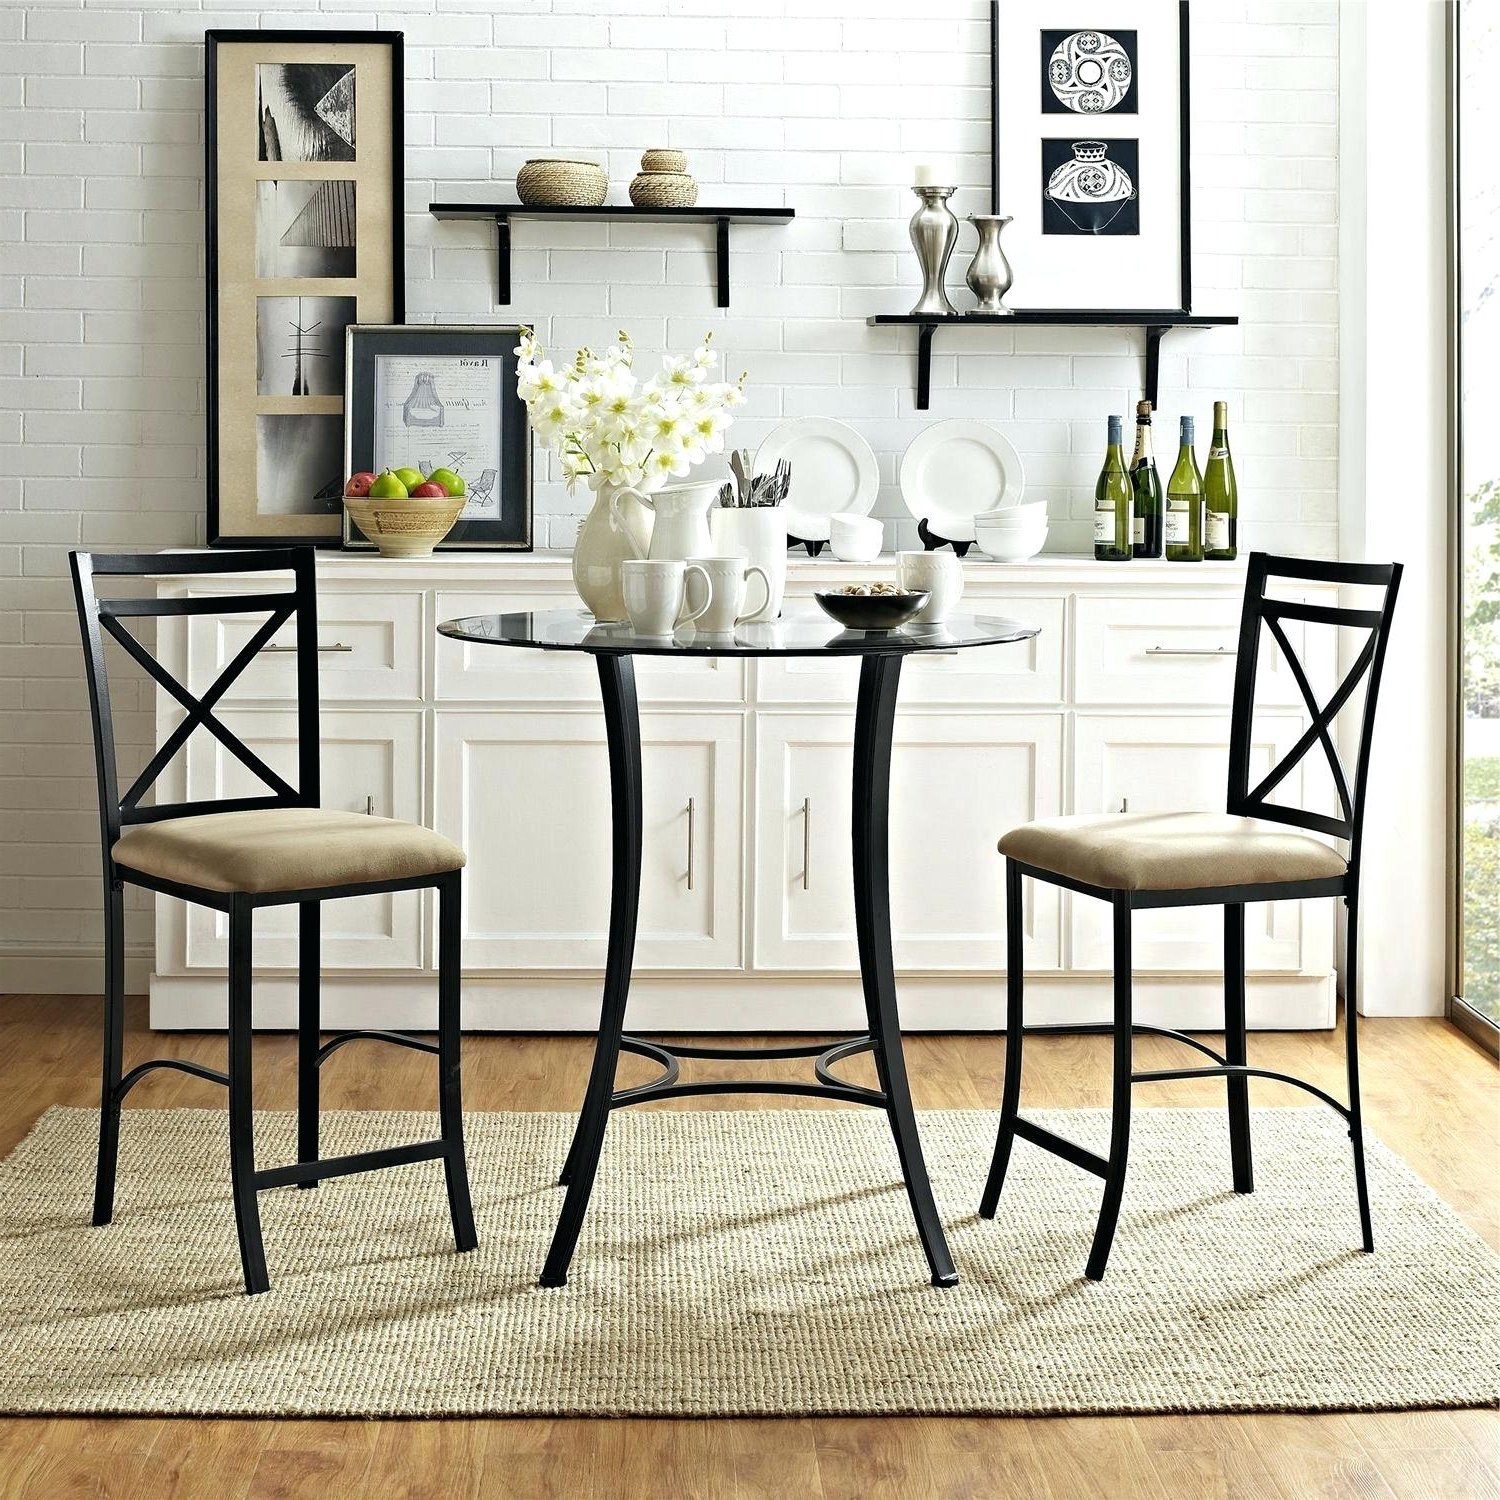 Denzel 5 Piece Counter Height Breakfast Nook Dining Sets Throughout Fashionable Counter Height Breakfast Nook S Dining Set – Dortmundfcstore (View 18 of 25)